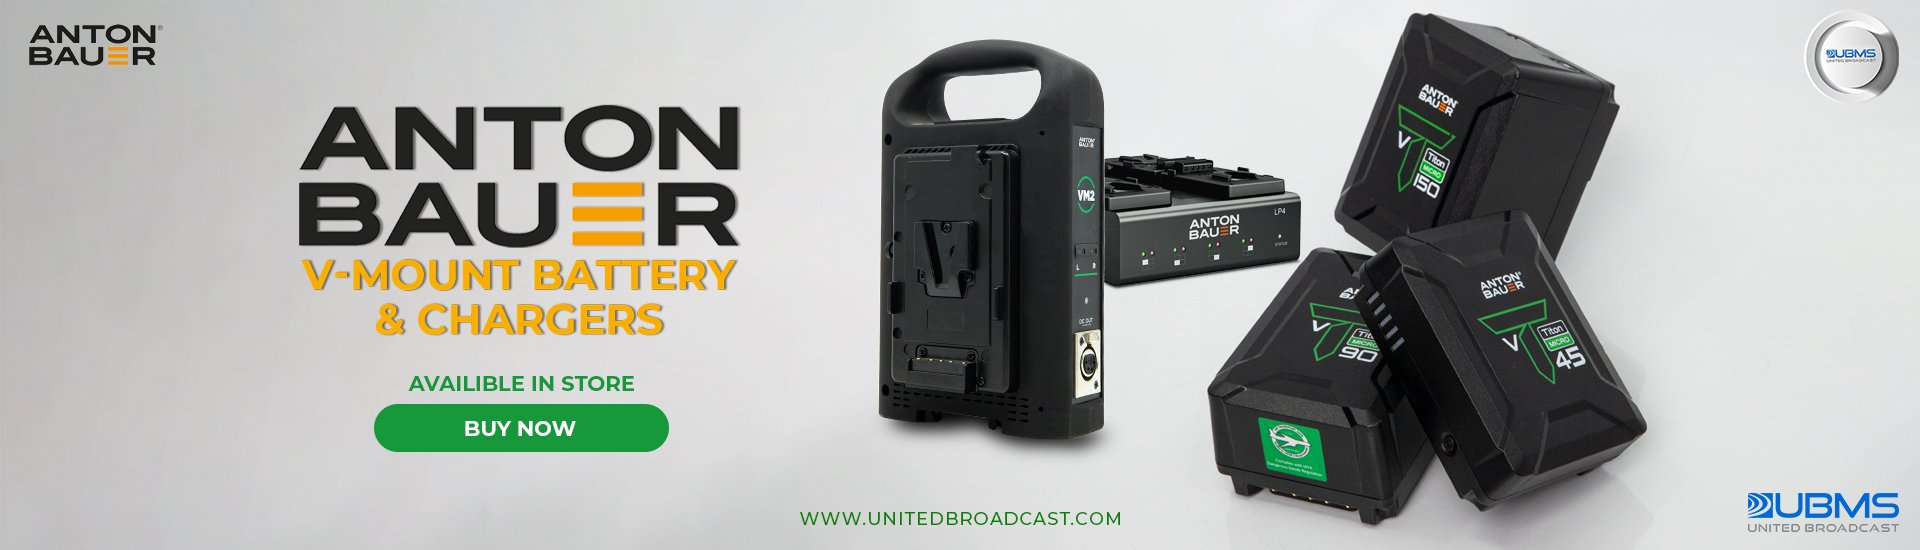 Anton Bauer V-mount batteries and chargers